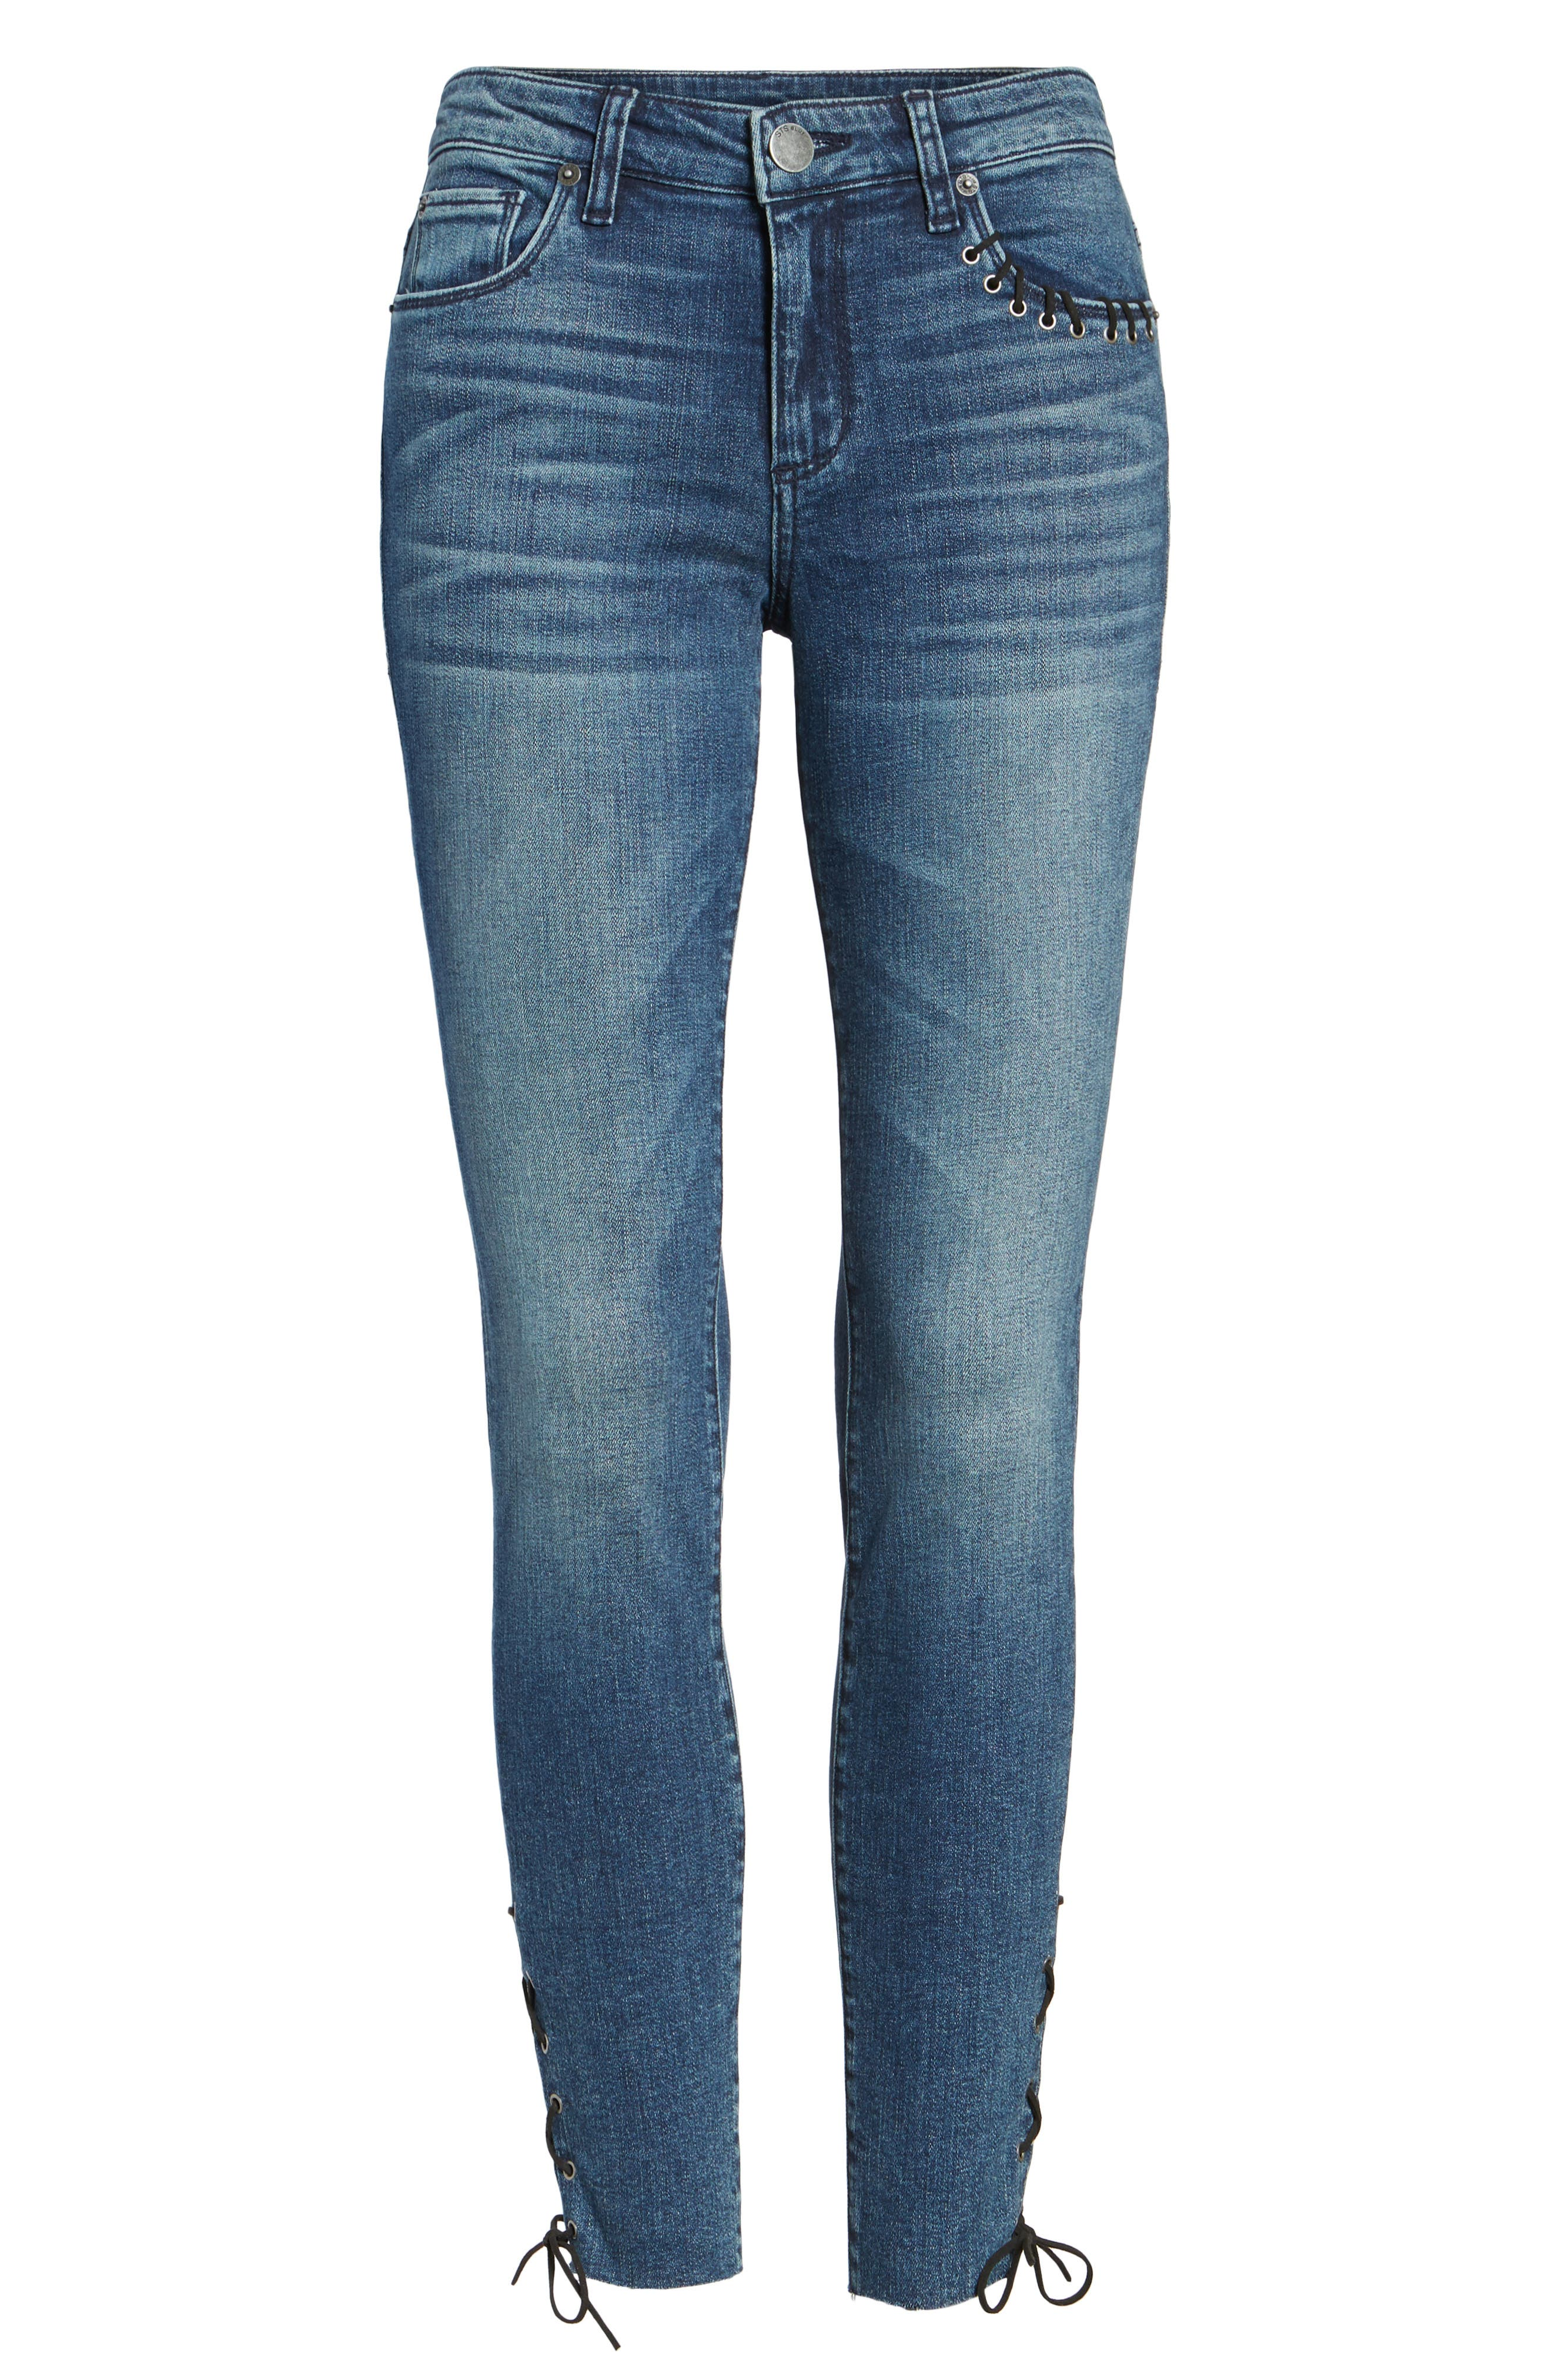 Emma Lace-Up Ankle Skinny Jeans,                             Alternate thumbnail 6, color,                             400